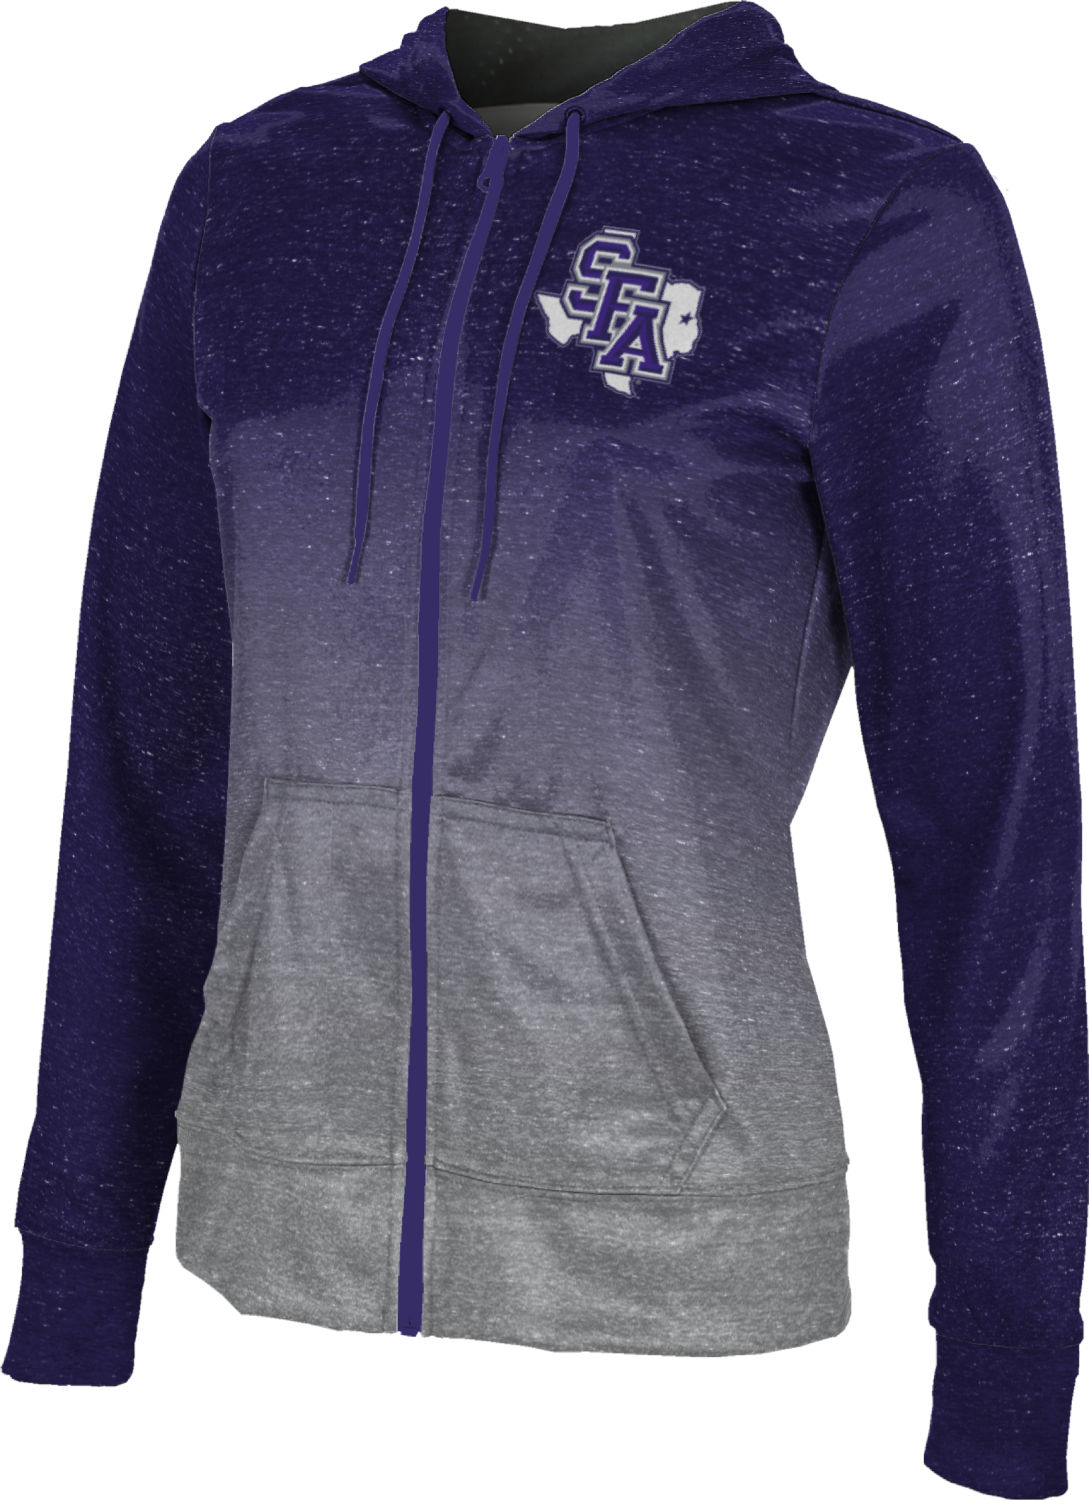 ProSphere Girls' Stephen F. Austin State University Ombre Fullzip Hoodie